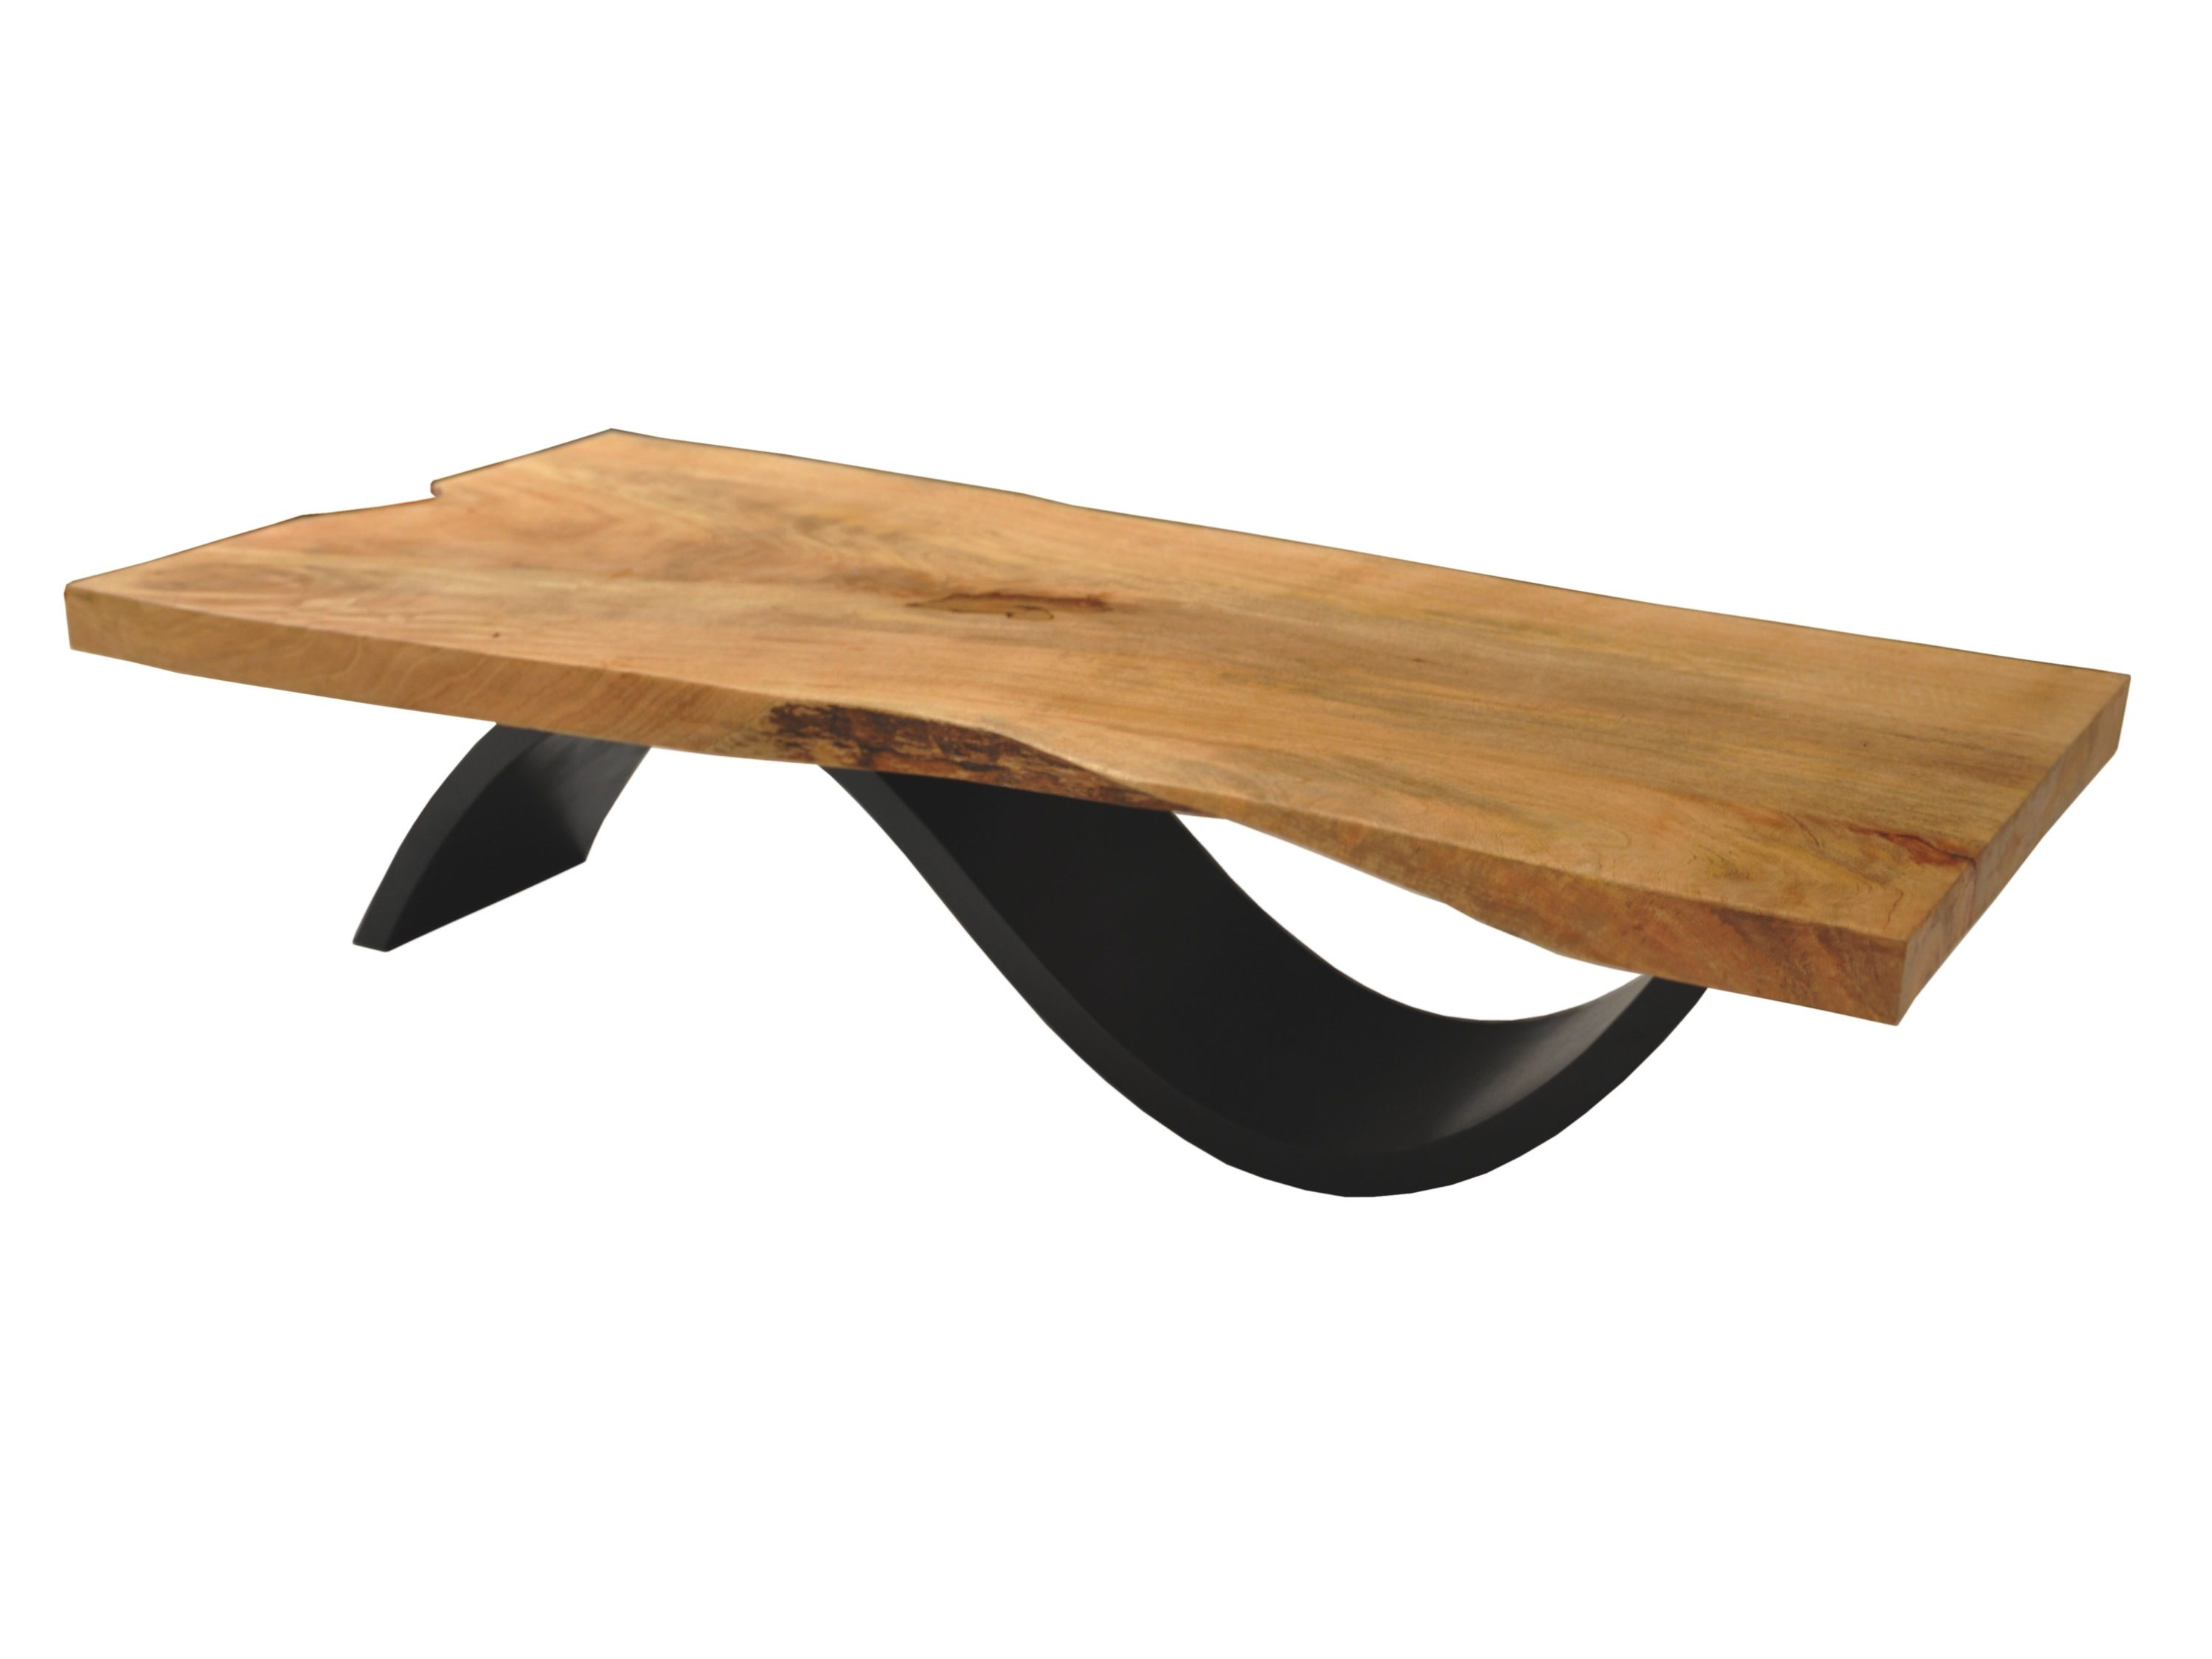 natural edge slab coffee table with Brazilian solid wood and unique